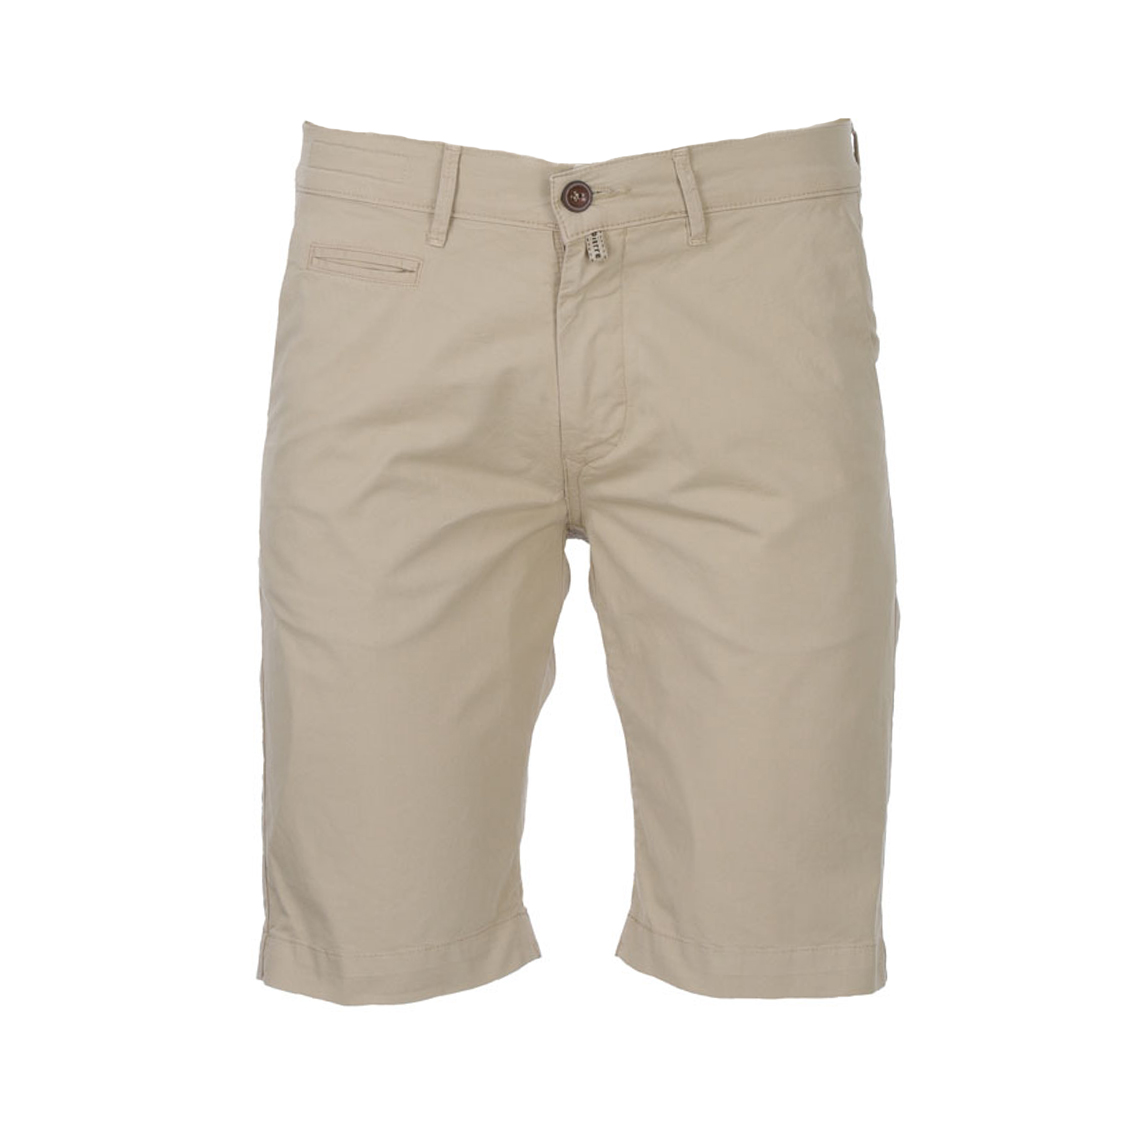 Short chino  lyon en coton stretch beige